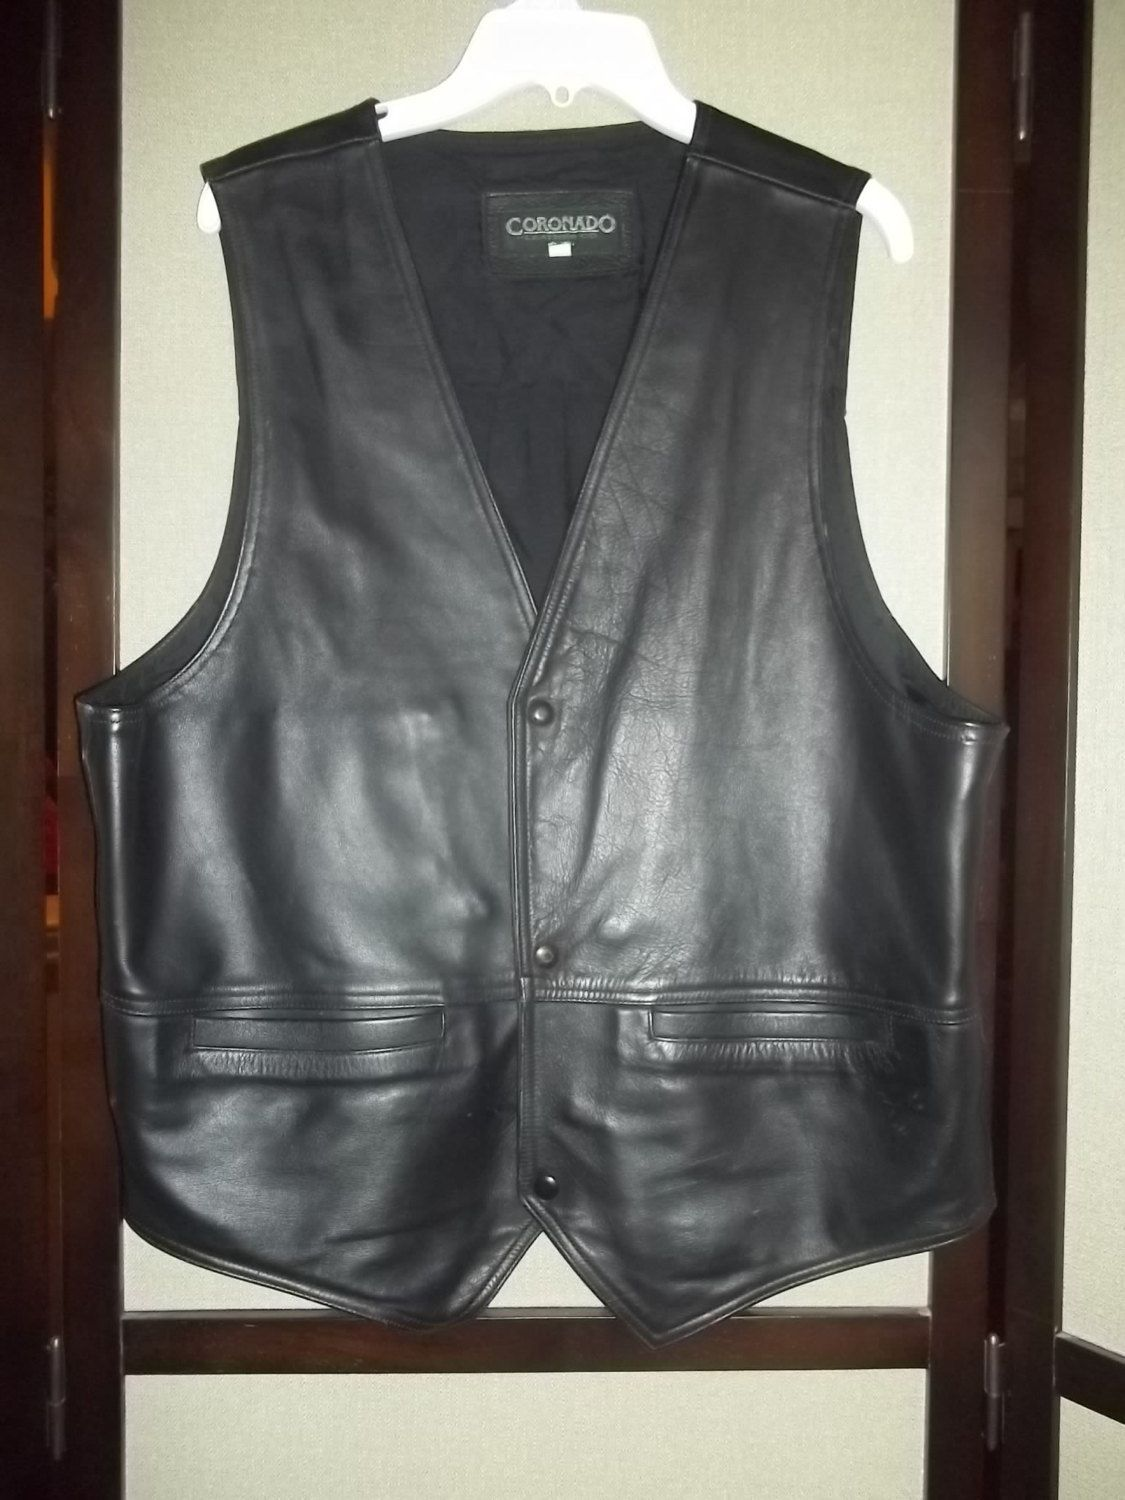 SOLD....Vintage 80's Men Vest - By Coronado Leather Co. Gorgeous Thick Yet Soft Leather - Fully Lined W/Hidden Pockets  Free Shipping by 1stand2ndTimeAround on Etsy